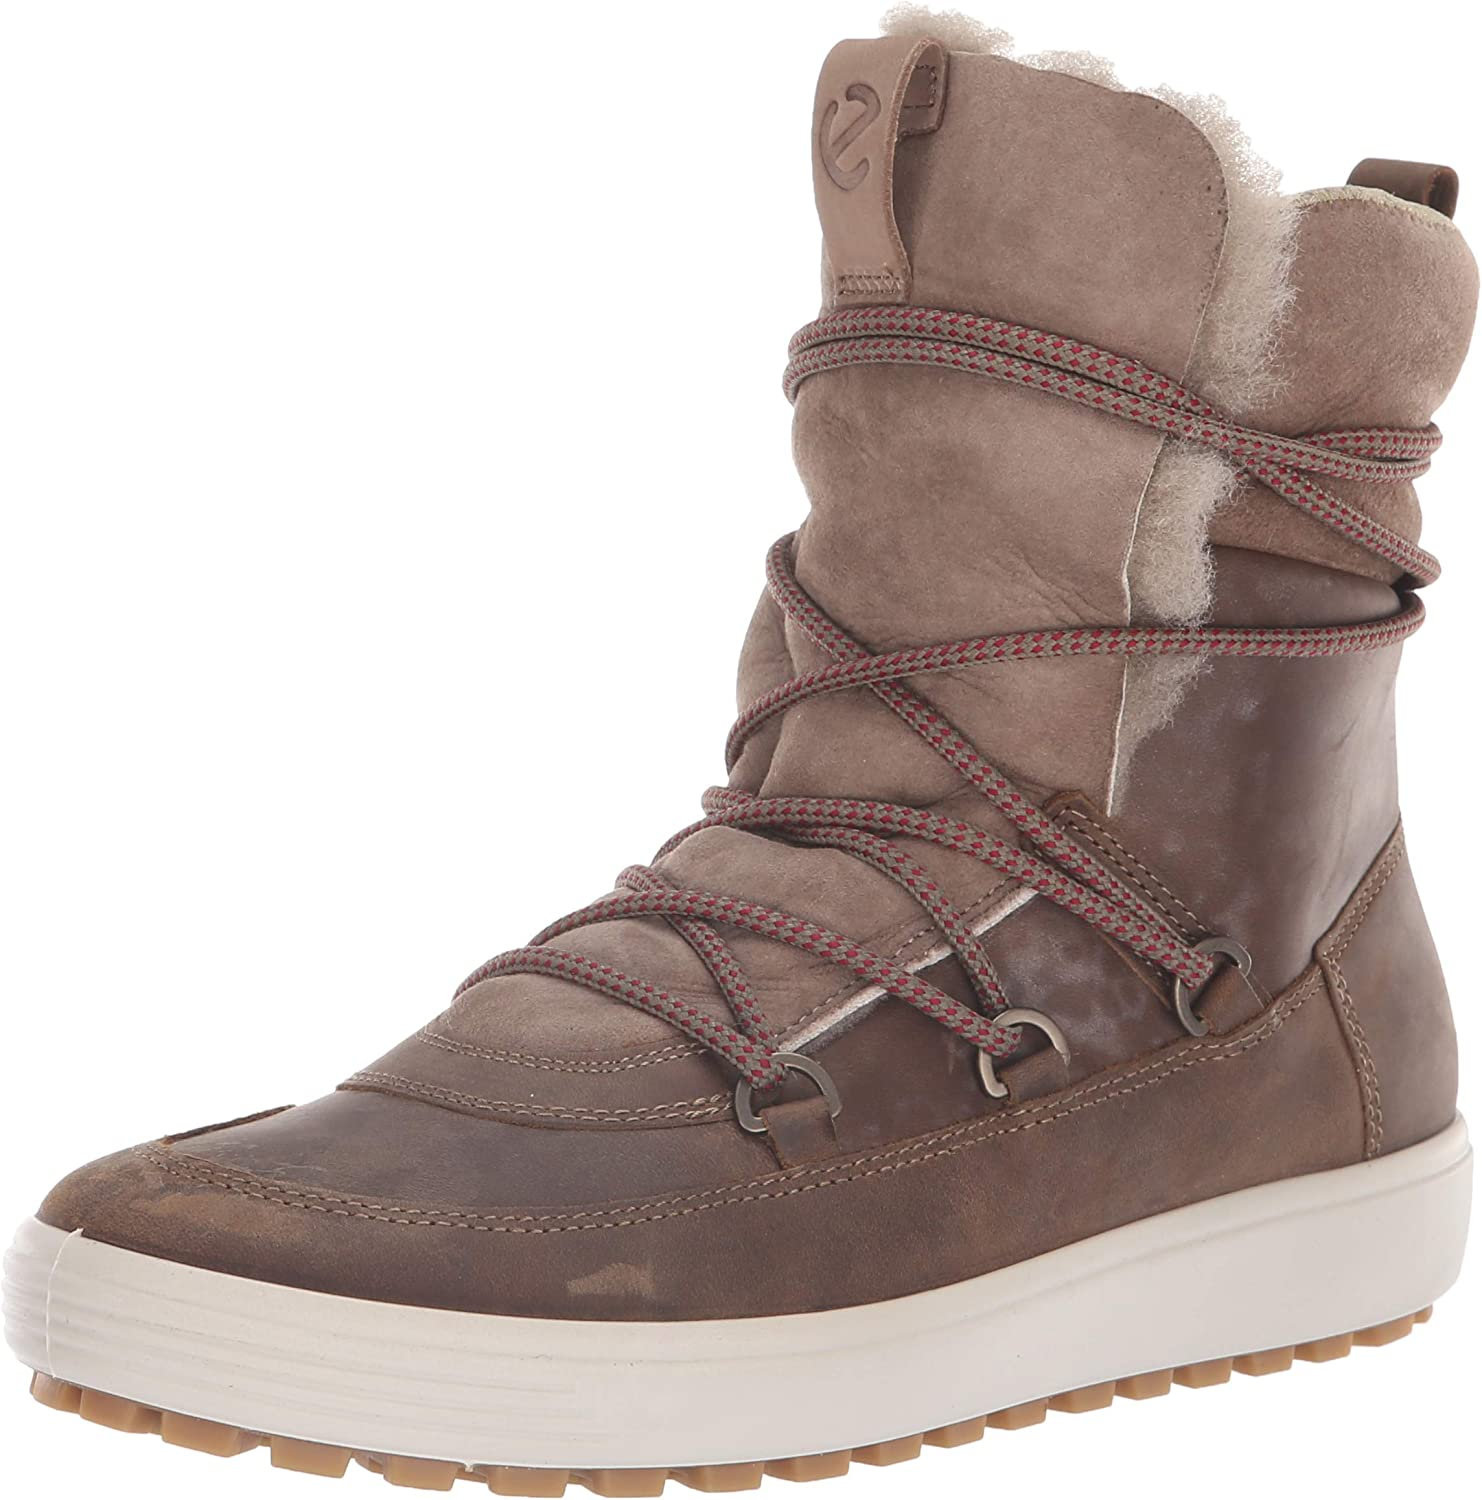 ECCO Womens Soft 7 Tred Mid Sneaker